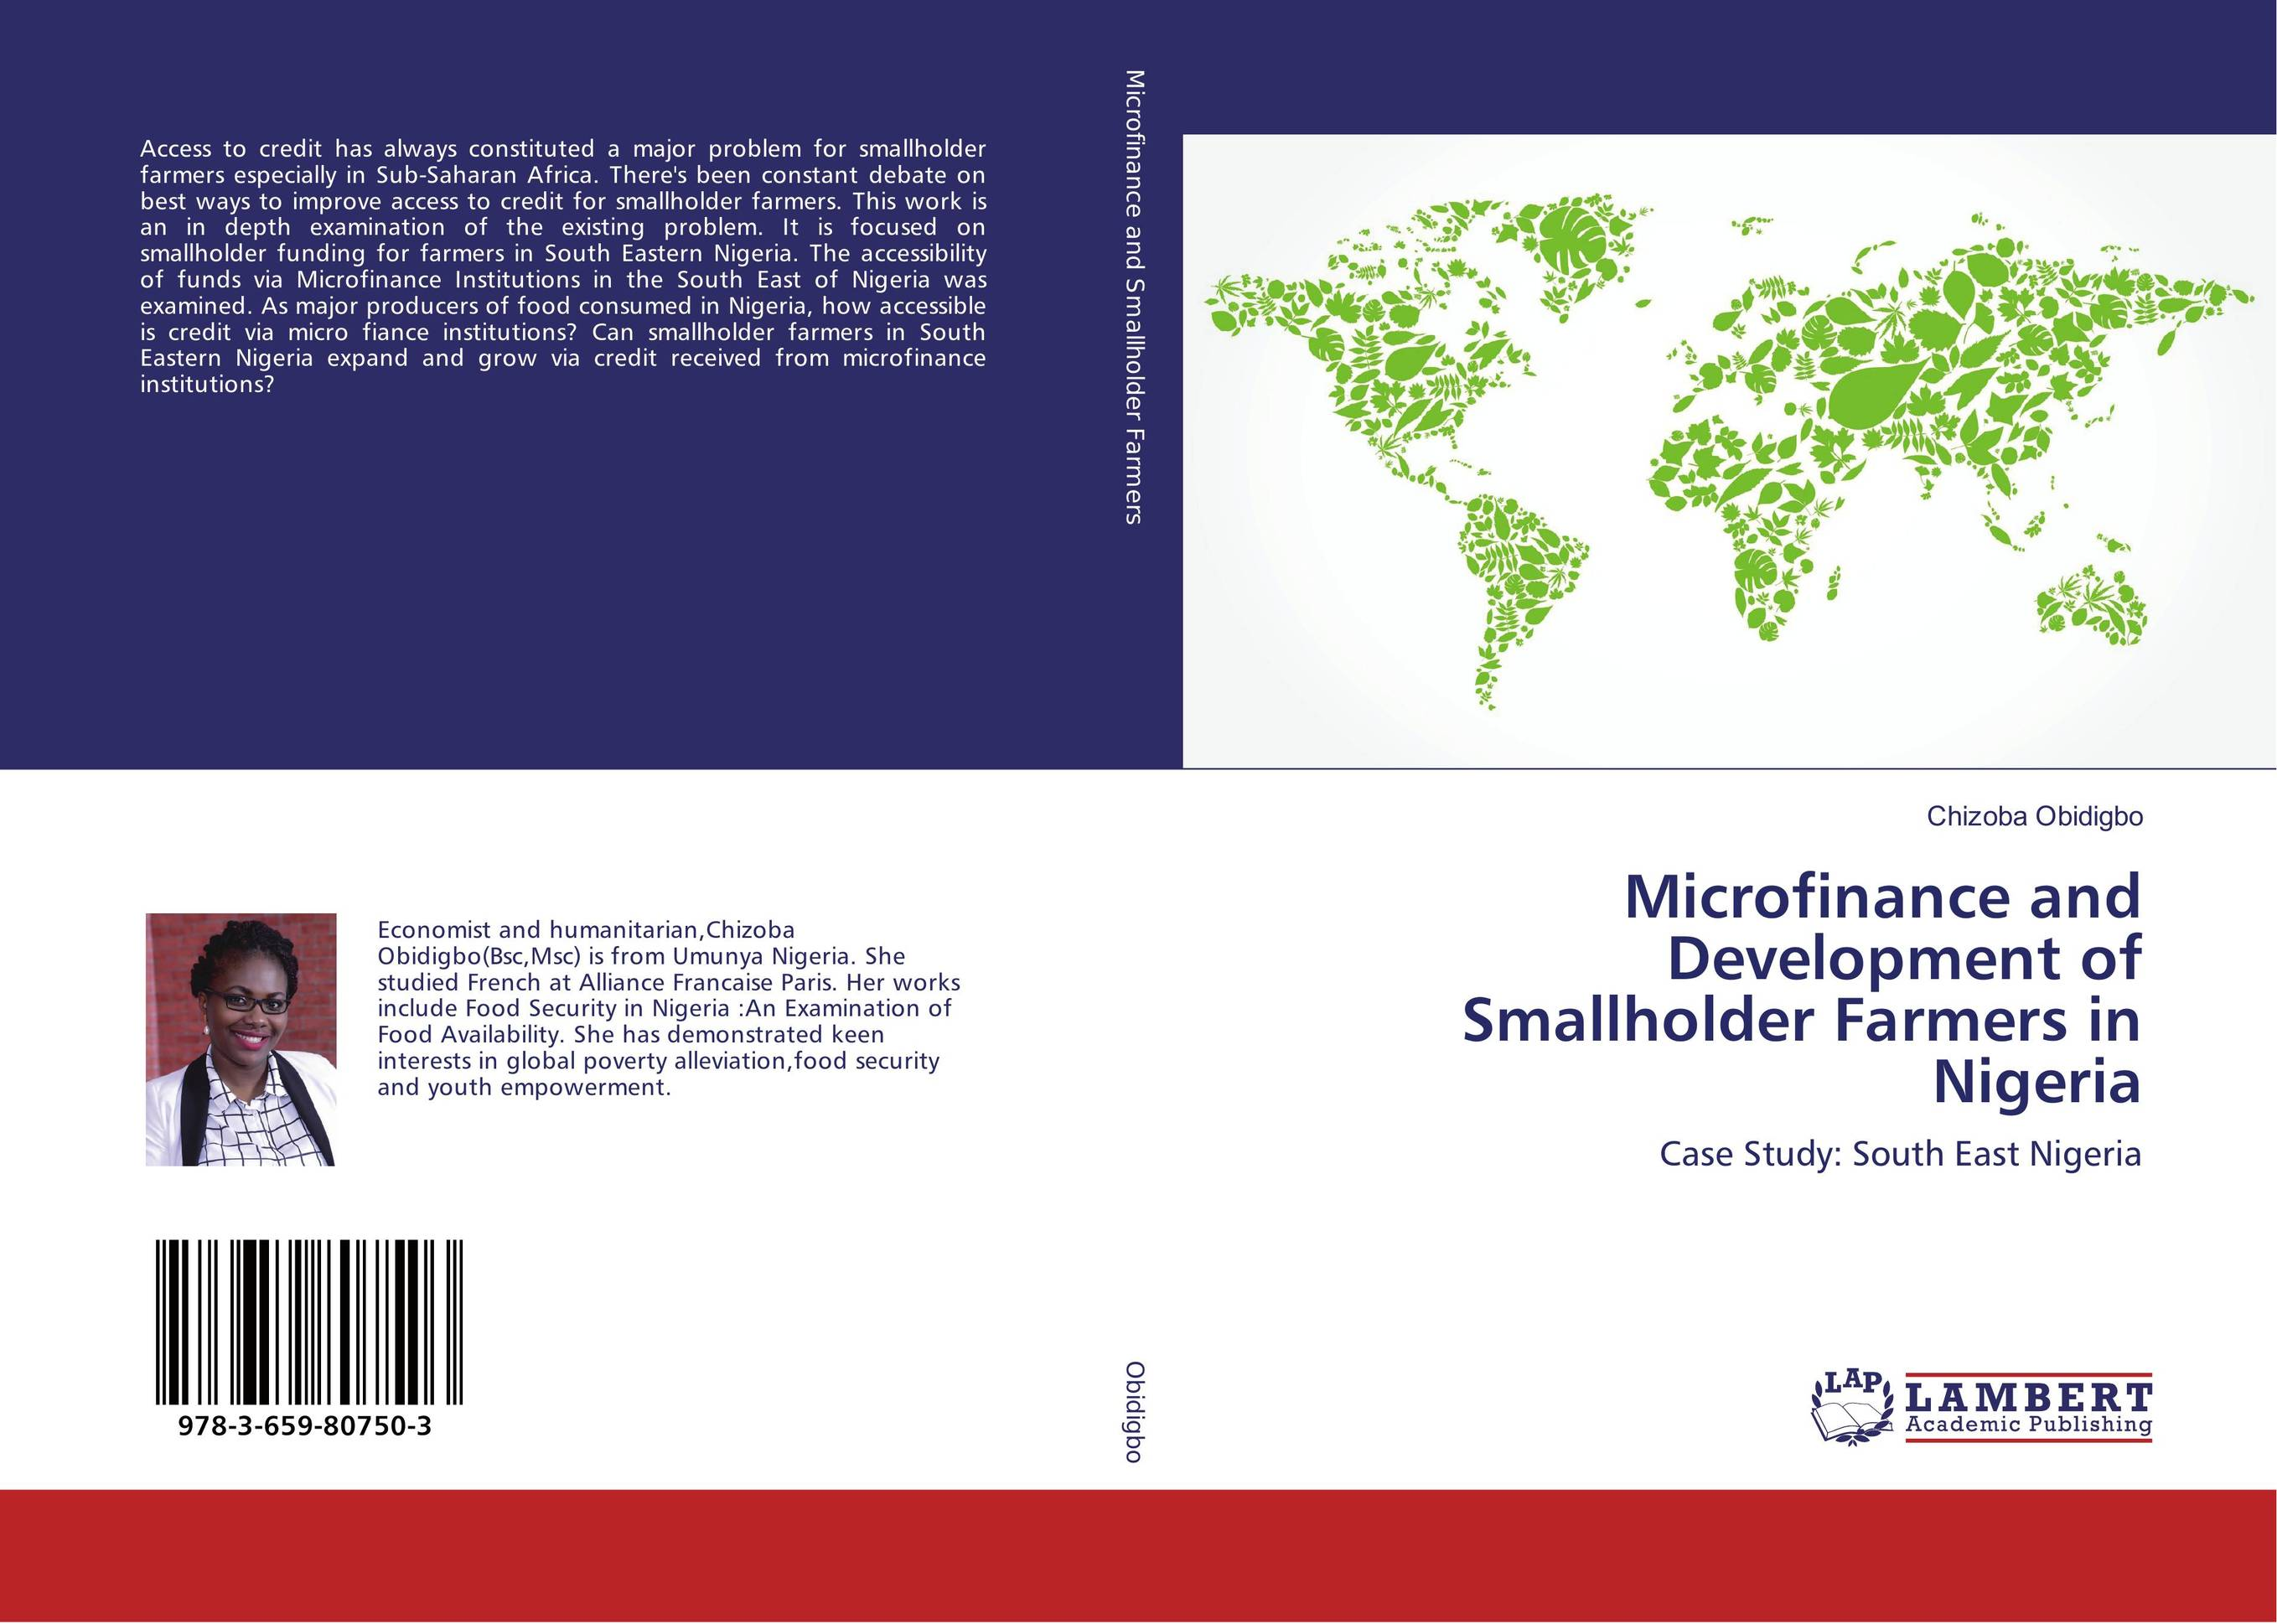 Microfinance and Development of Smallholder Farmers in Nigeria claw disorders in dairy cows under smallholder zero grazing units